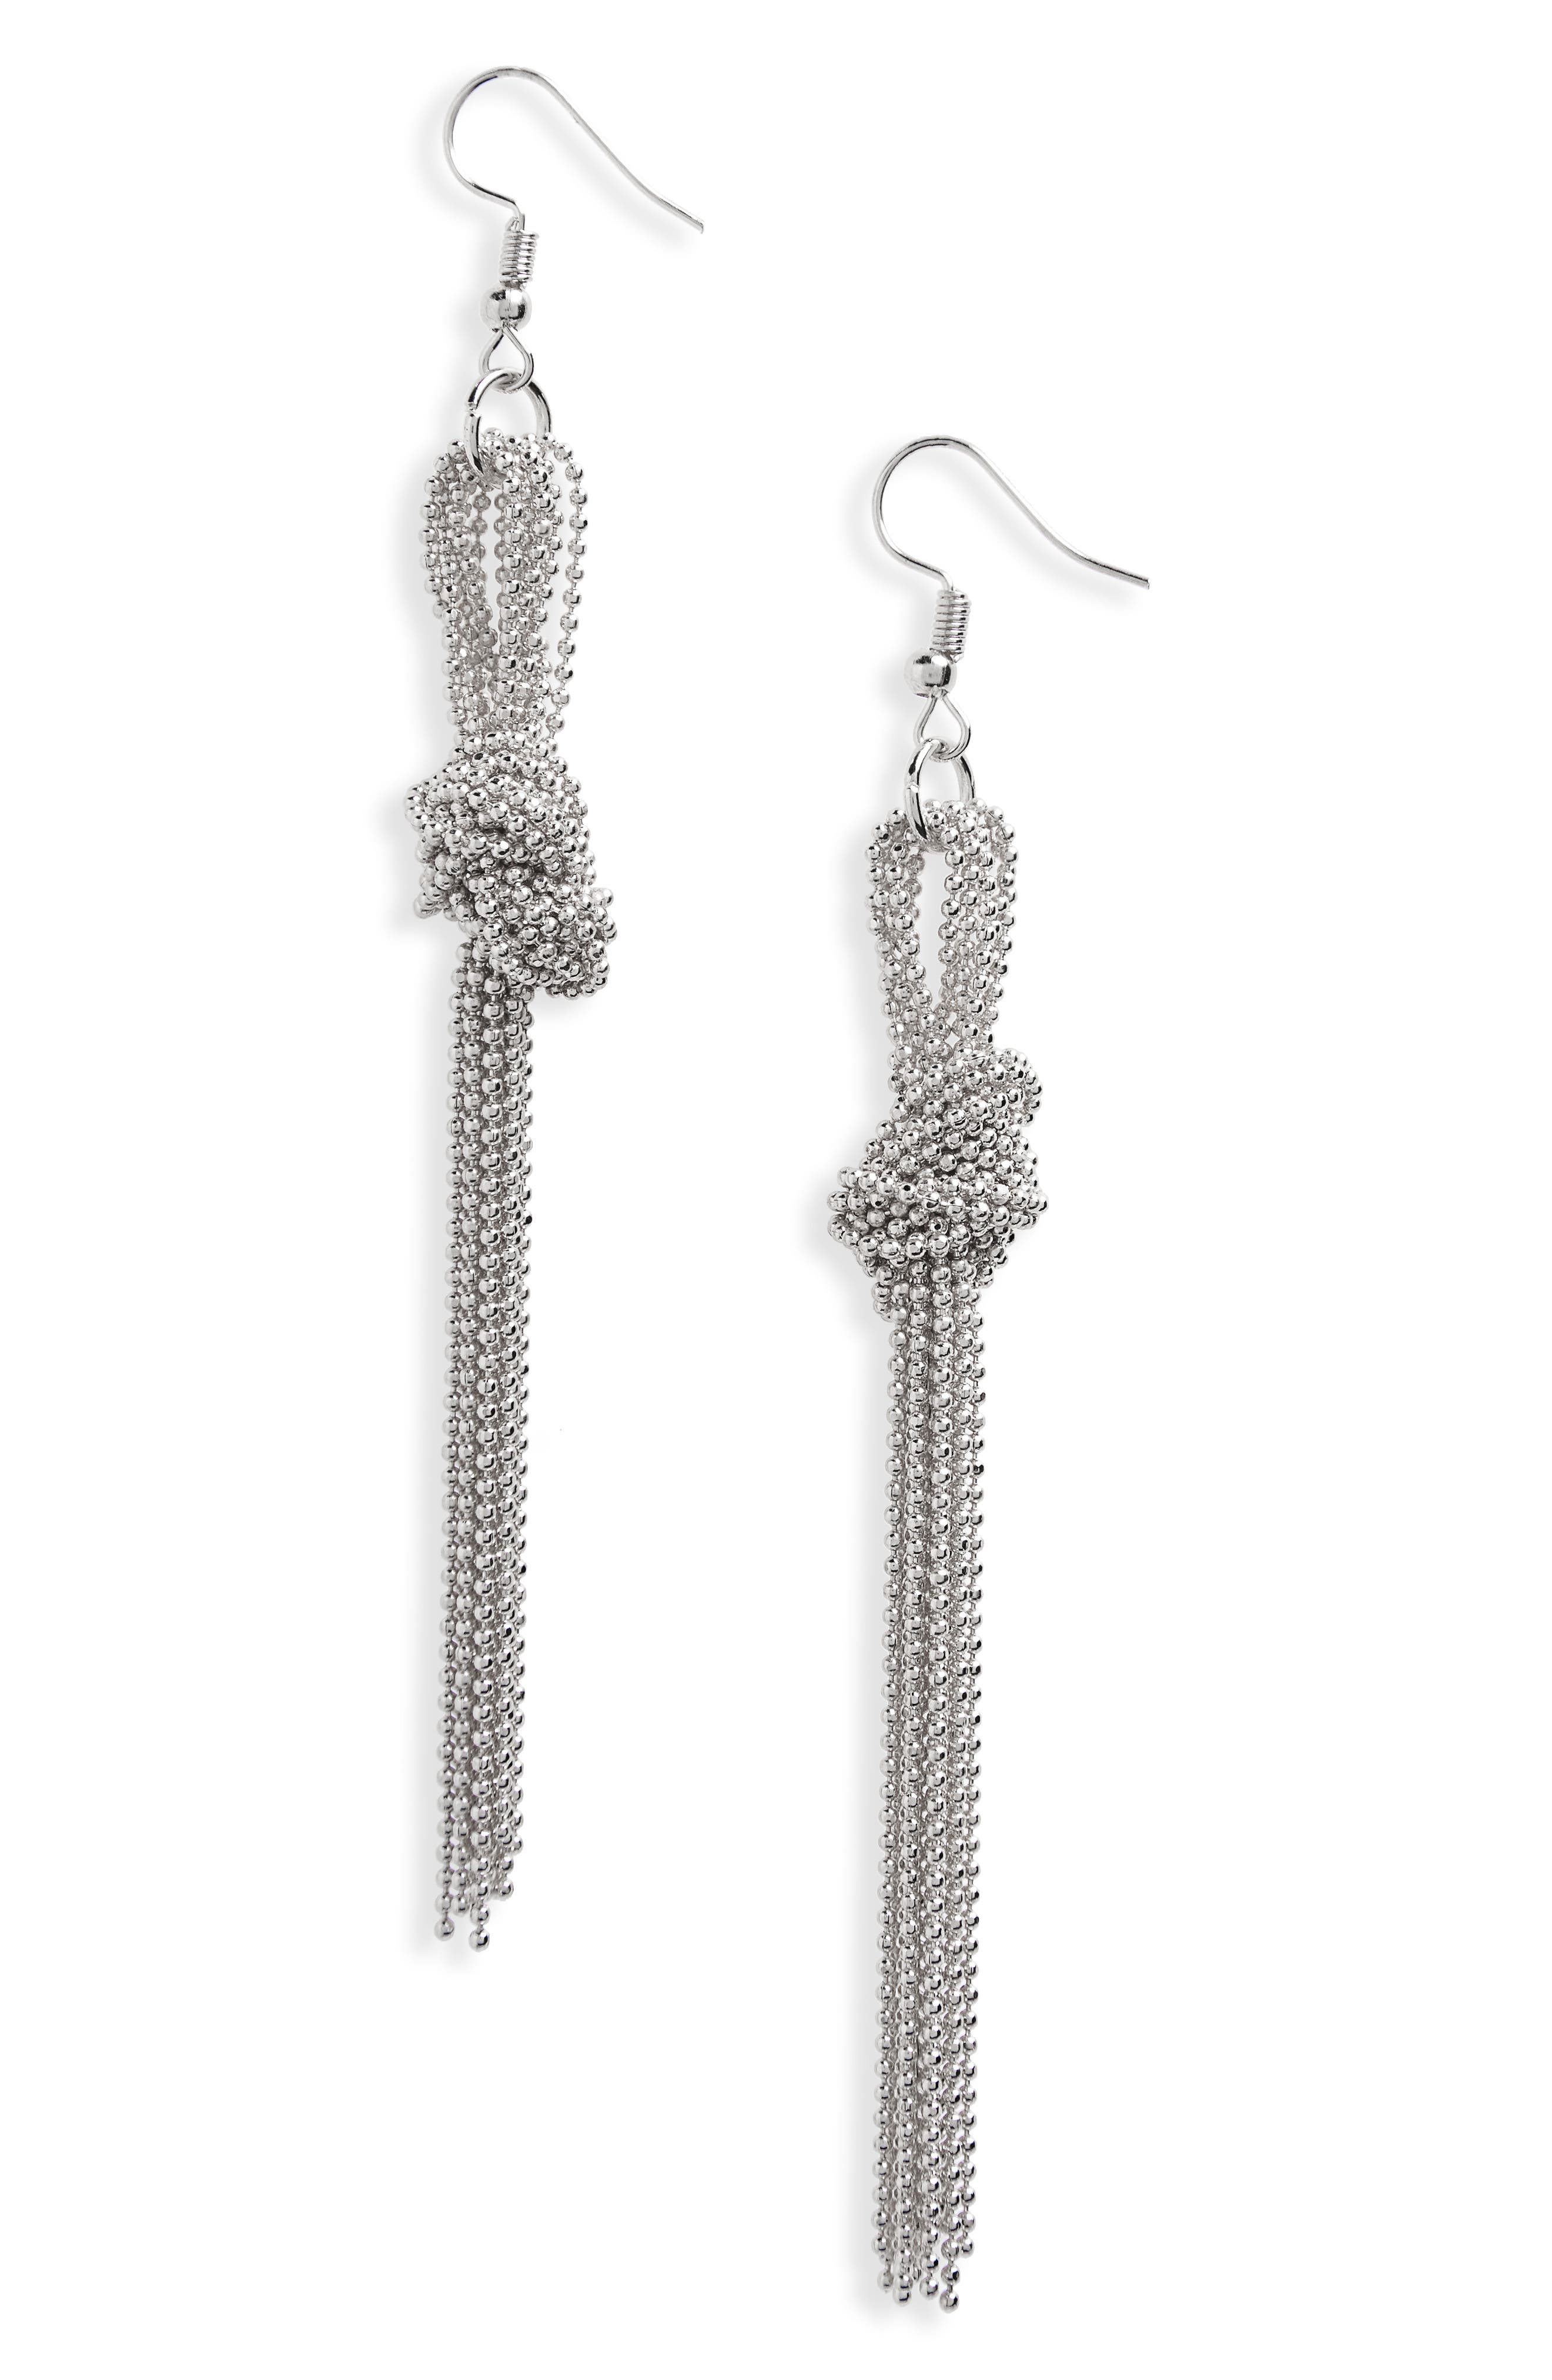 Knotted Bead Chain Linear Earrings,                             Main thumbnail 1, color,                             040